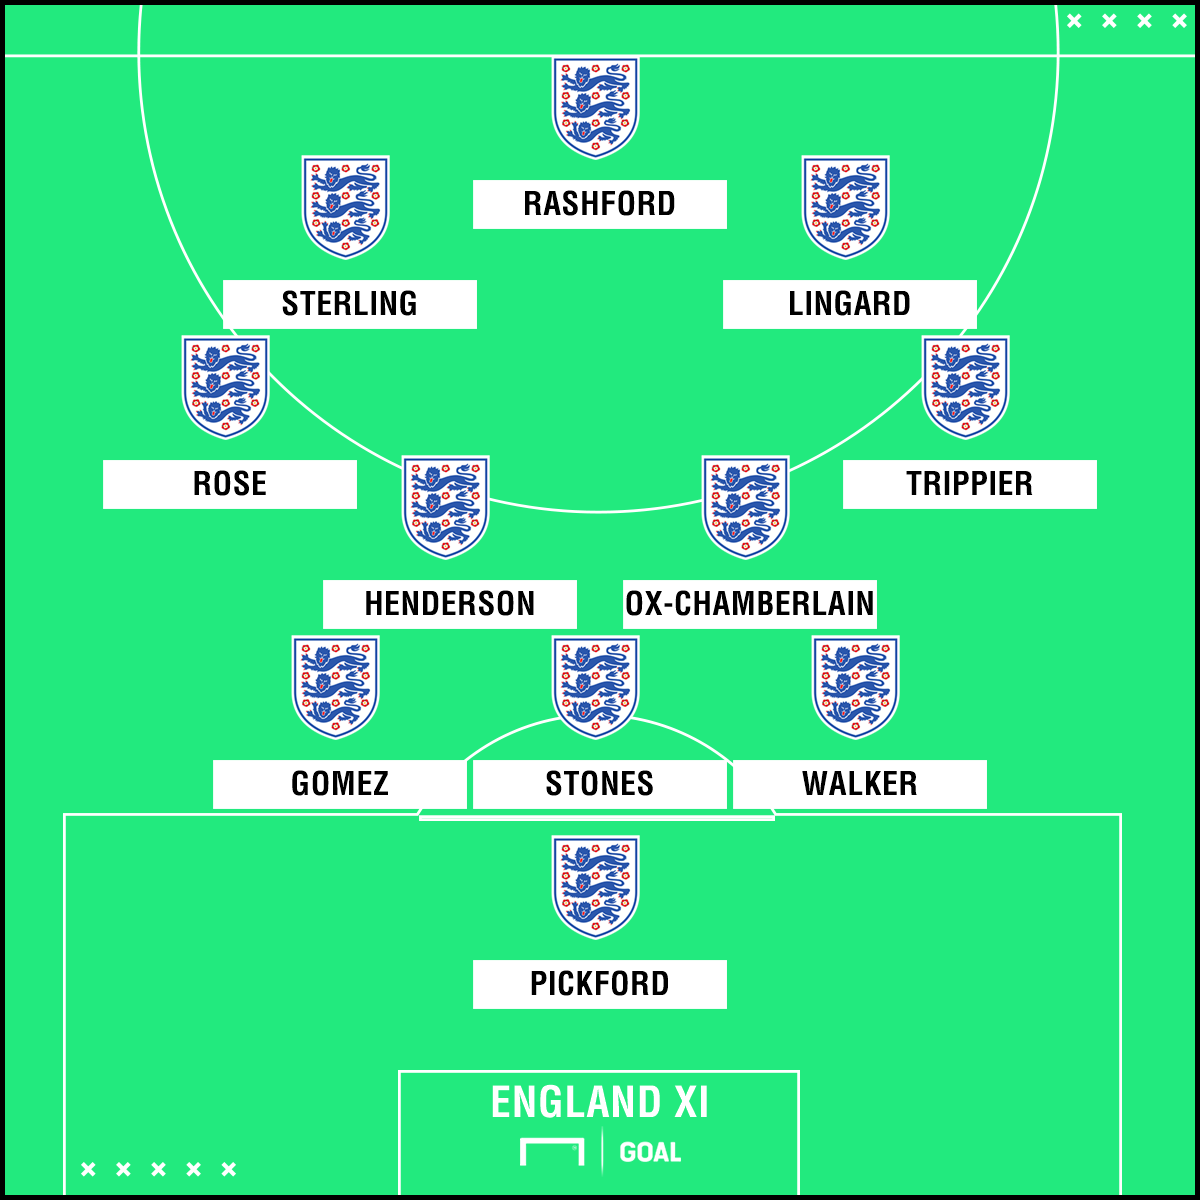 England XI vs Netherlands